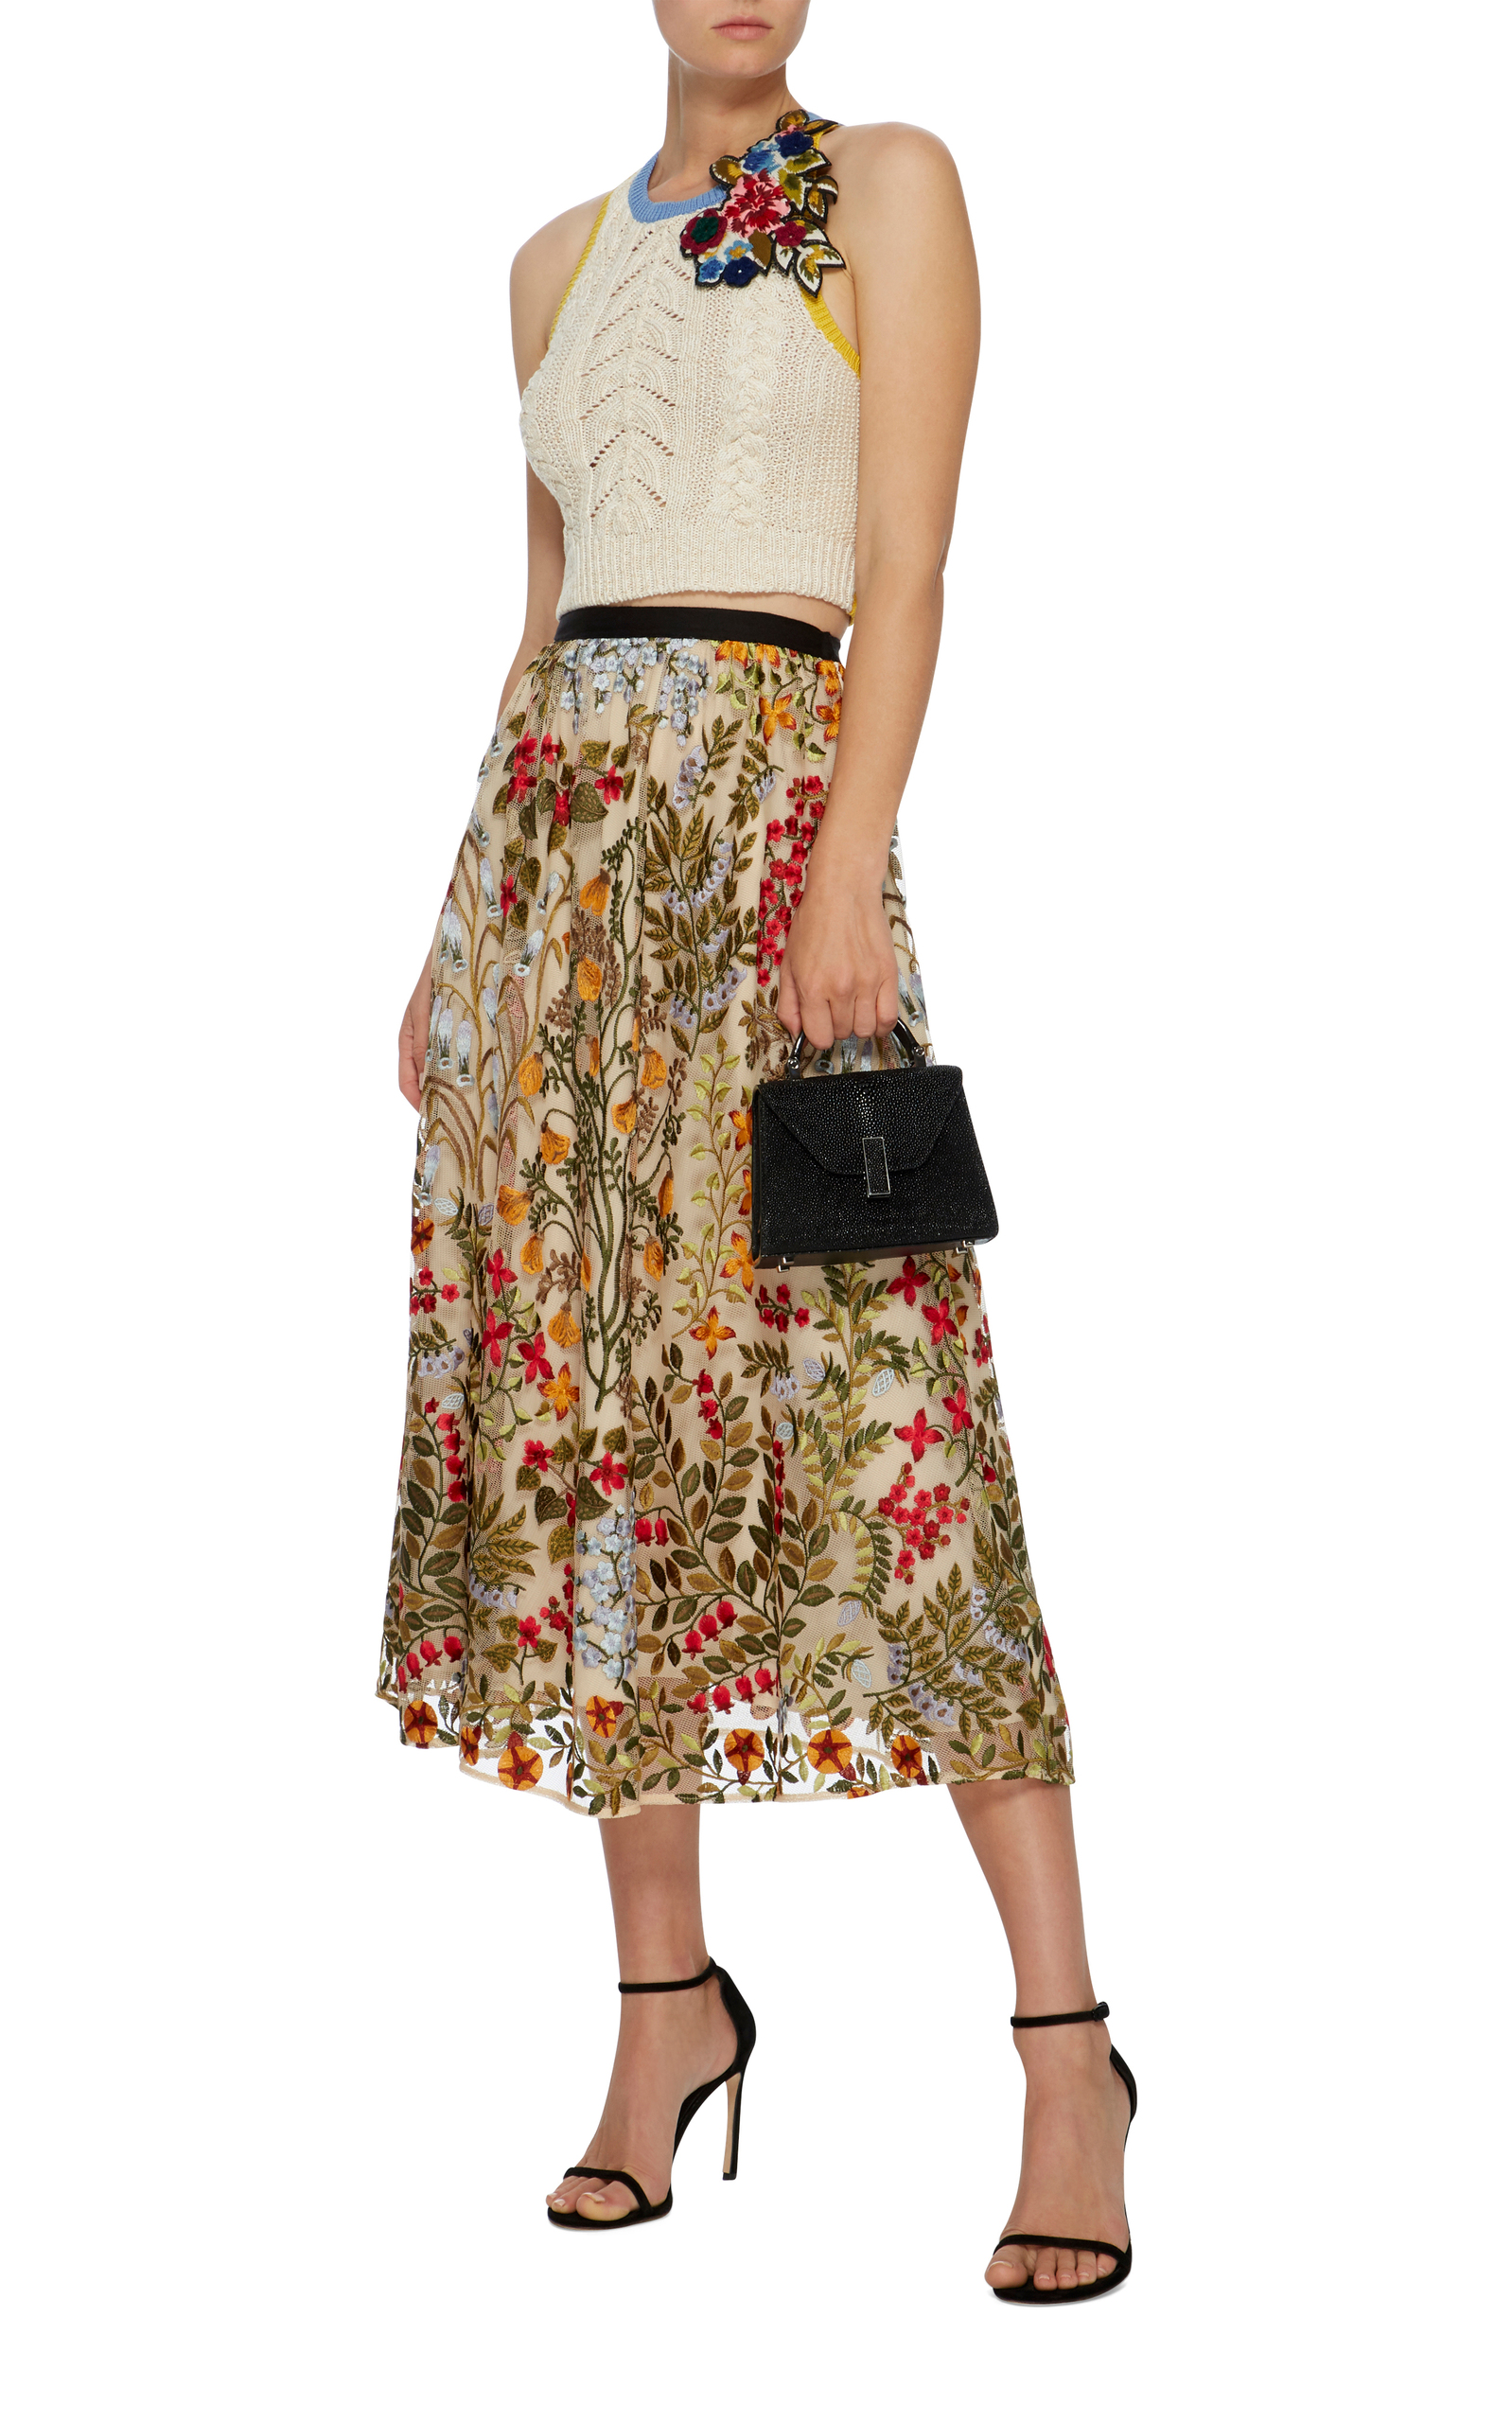 Best Store To Get Floral-Appliquéd Cropped Top Red Valentino Discounts Sale Online Best Prices Sale Online For Sale Footlocker 1BZd42wZX8